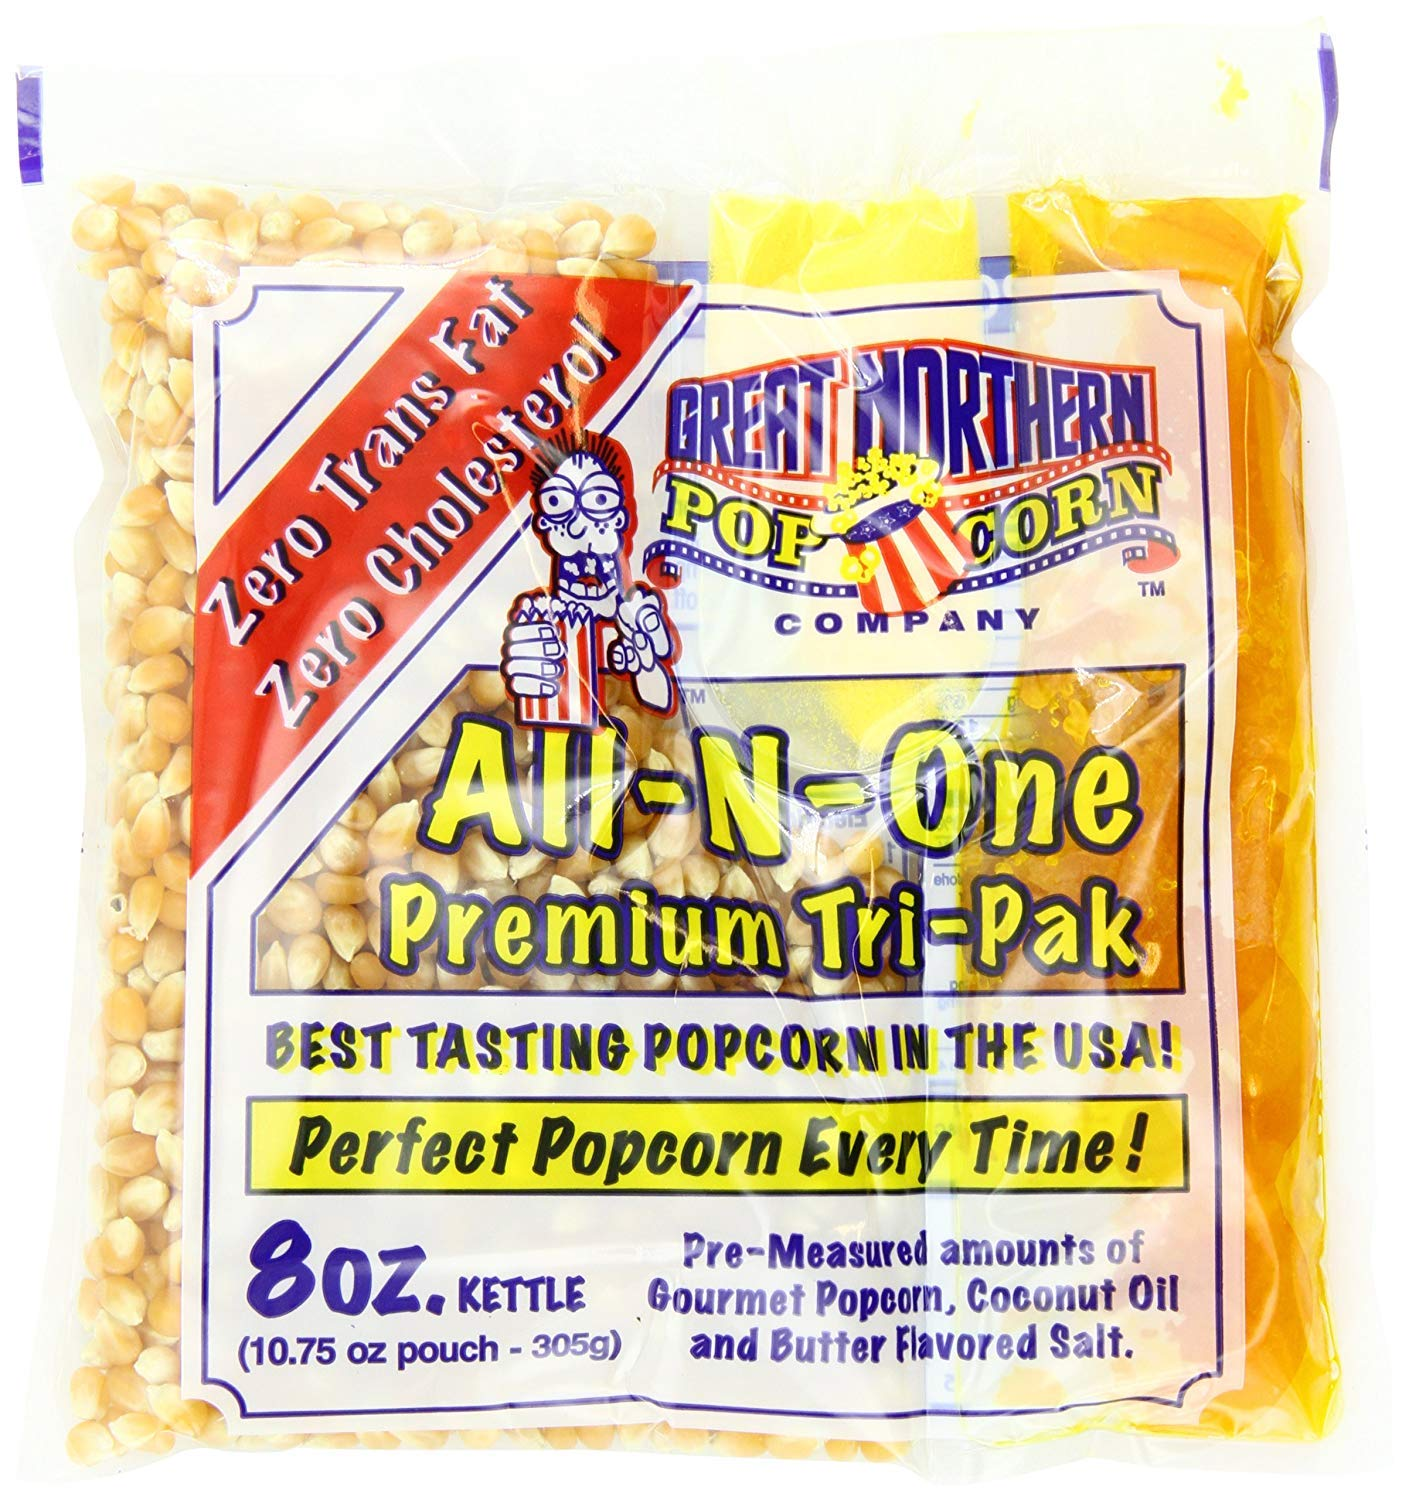 4110 Great Northern Popcorn Premium 8 Ounce (Pack of 40) (8 Ounce (Pack of 40))